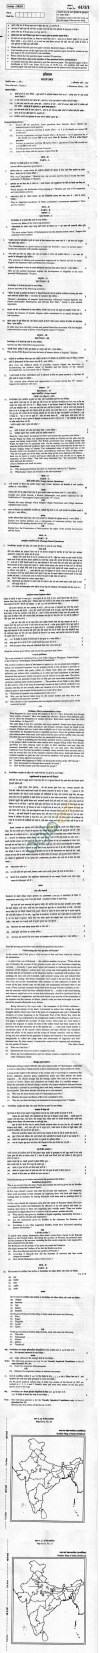 CBSE Board Exam 2013 Class XII Question Paper -History